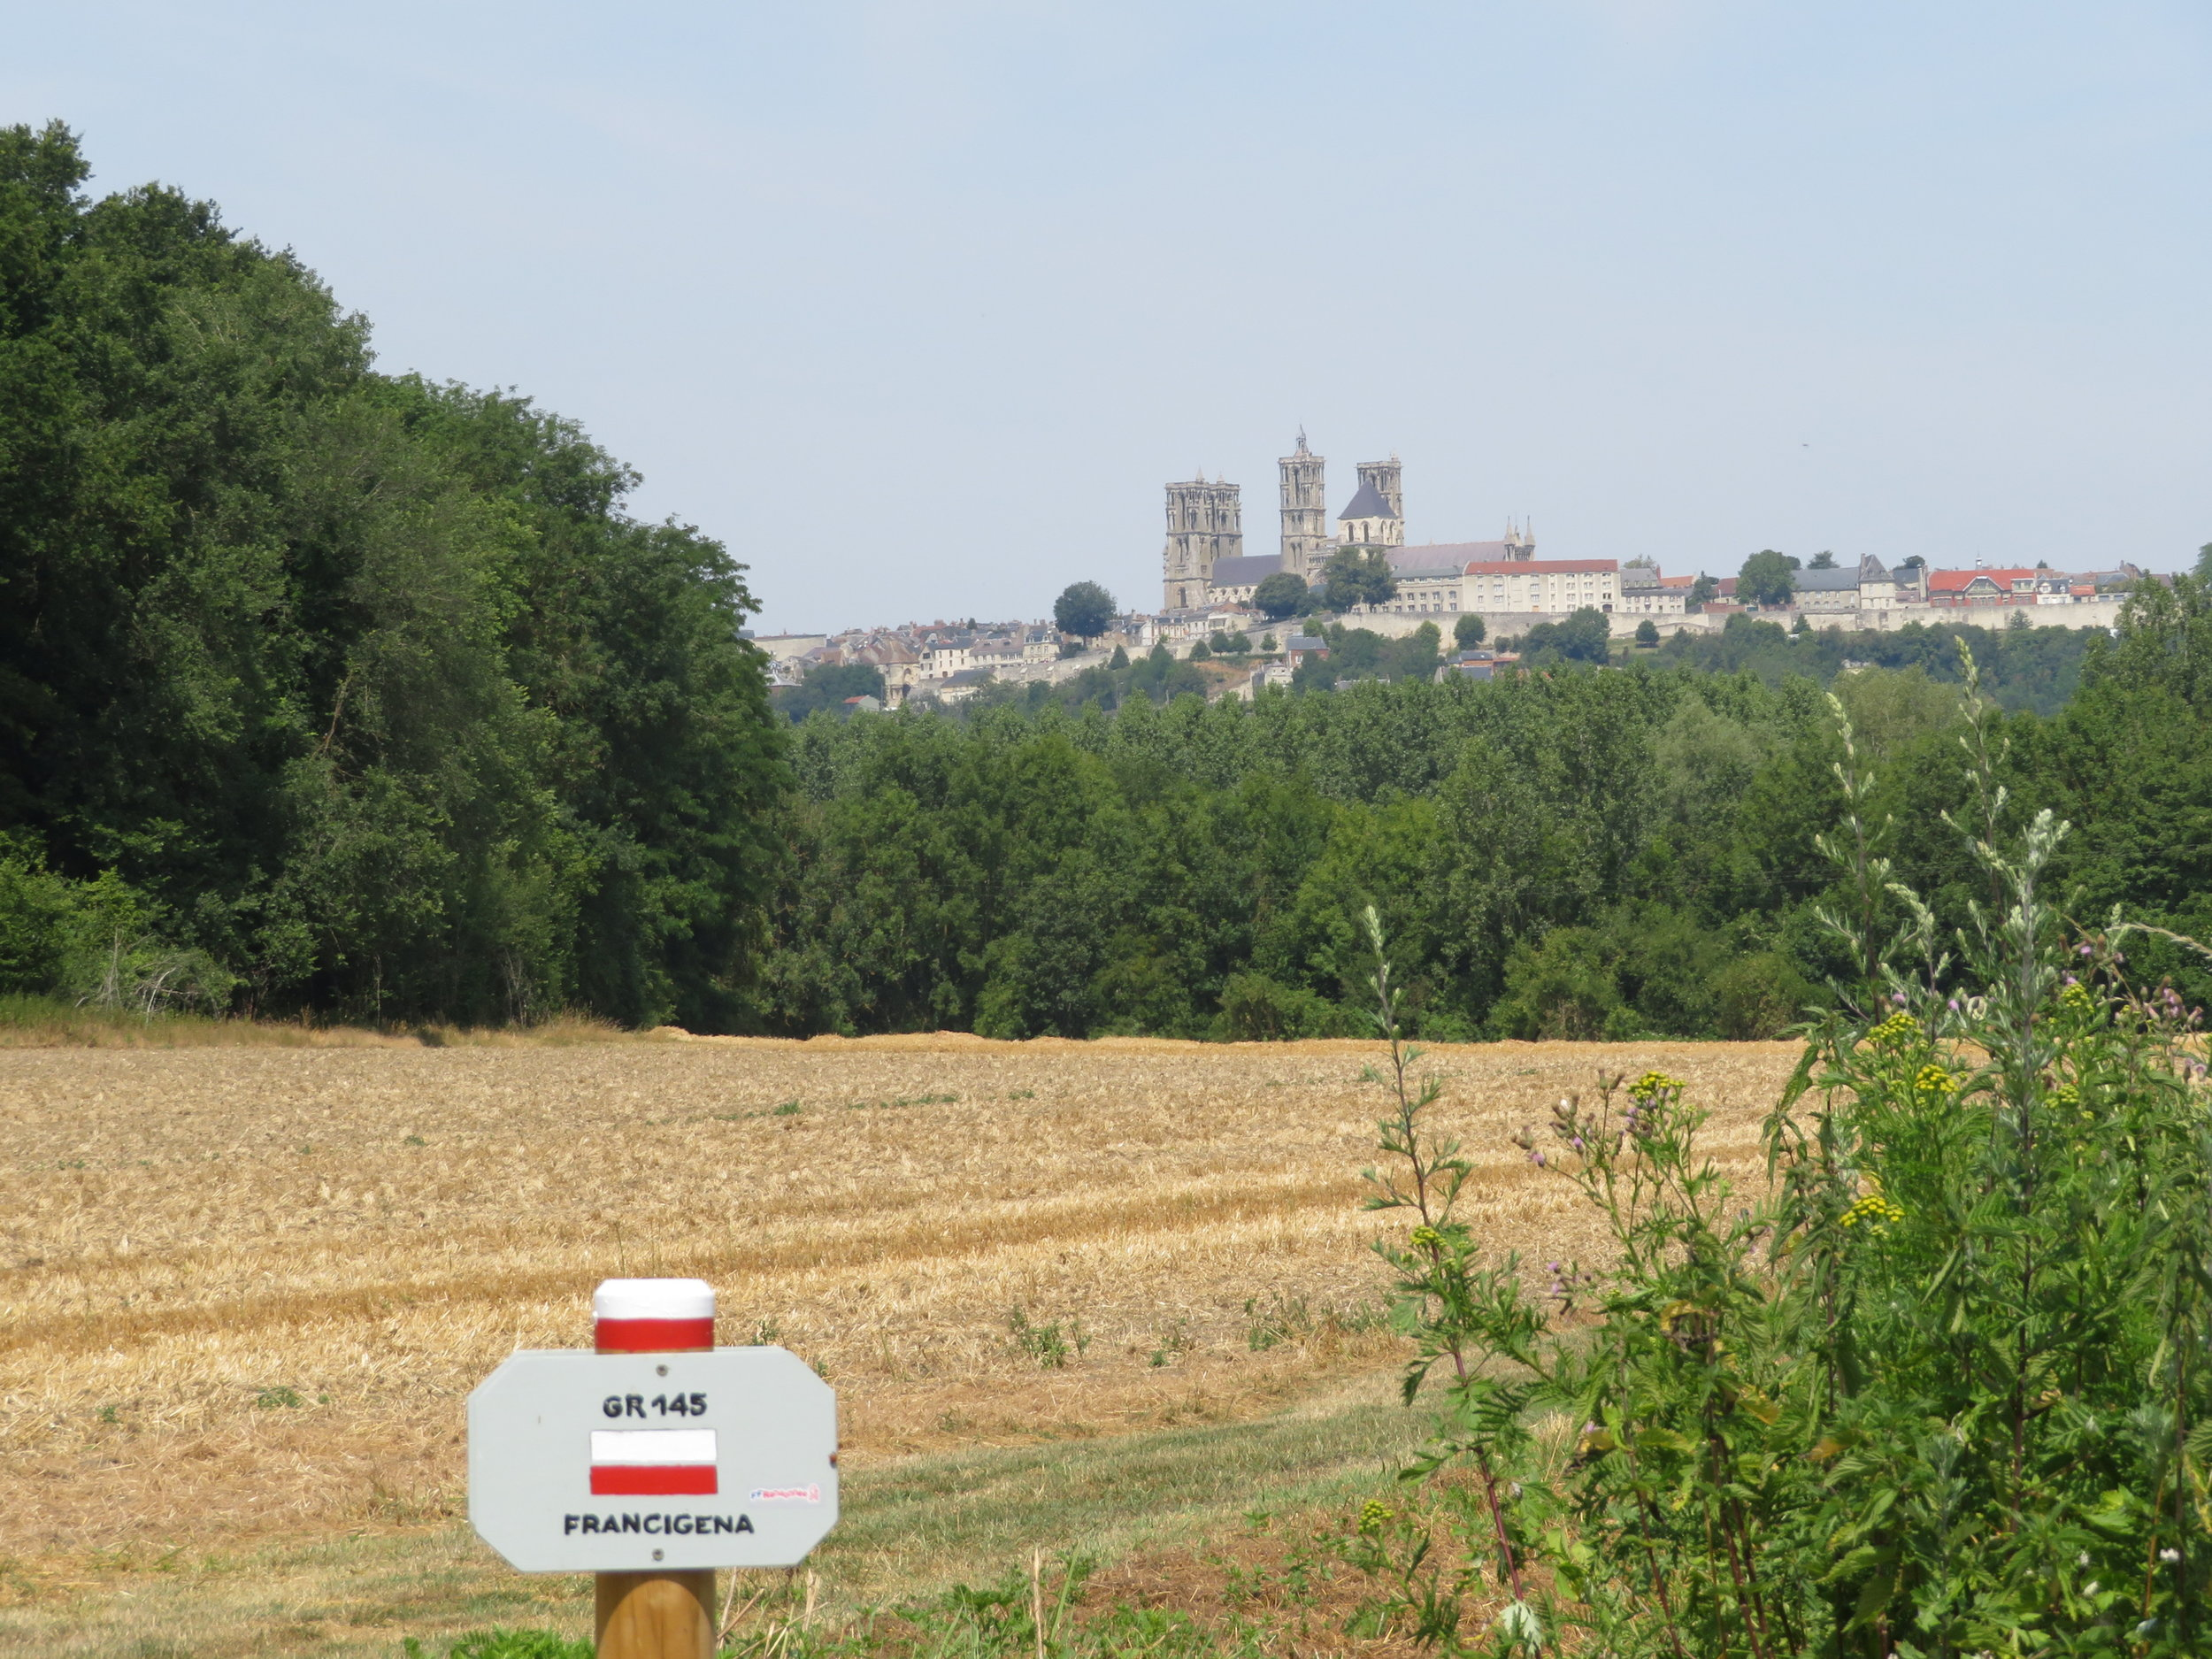 On the Via Francigena, the towers of Laon's Cathedral pop into view